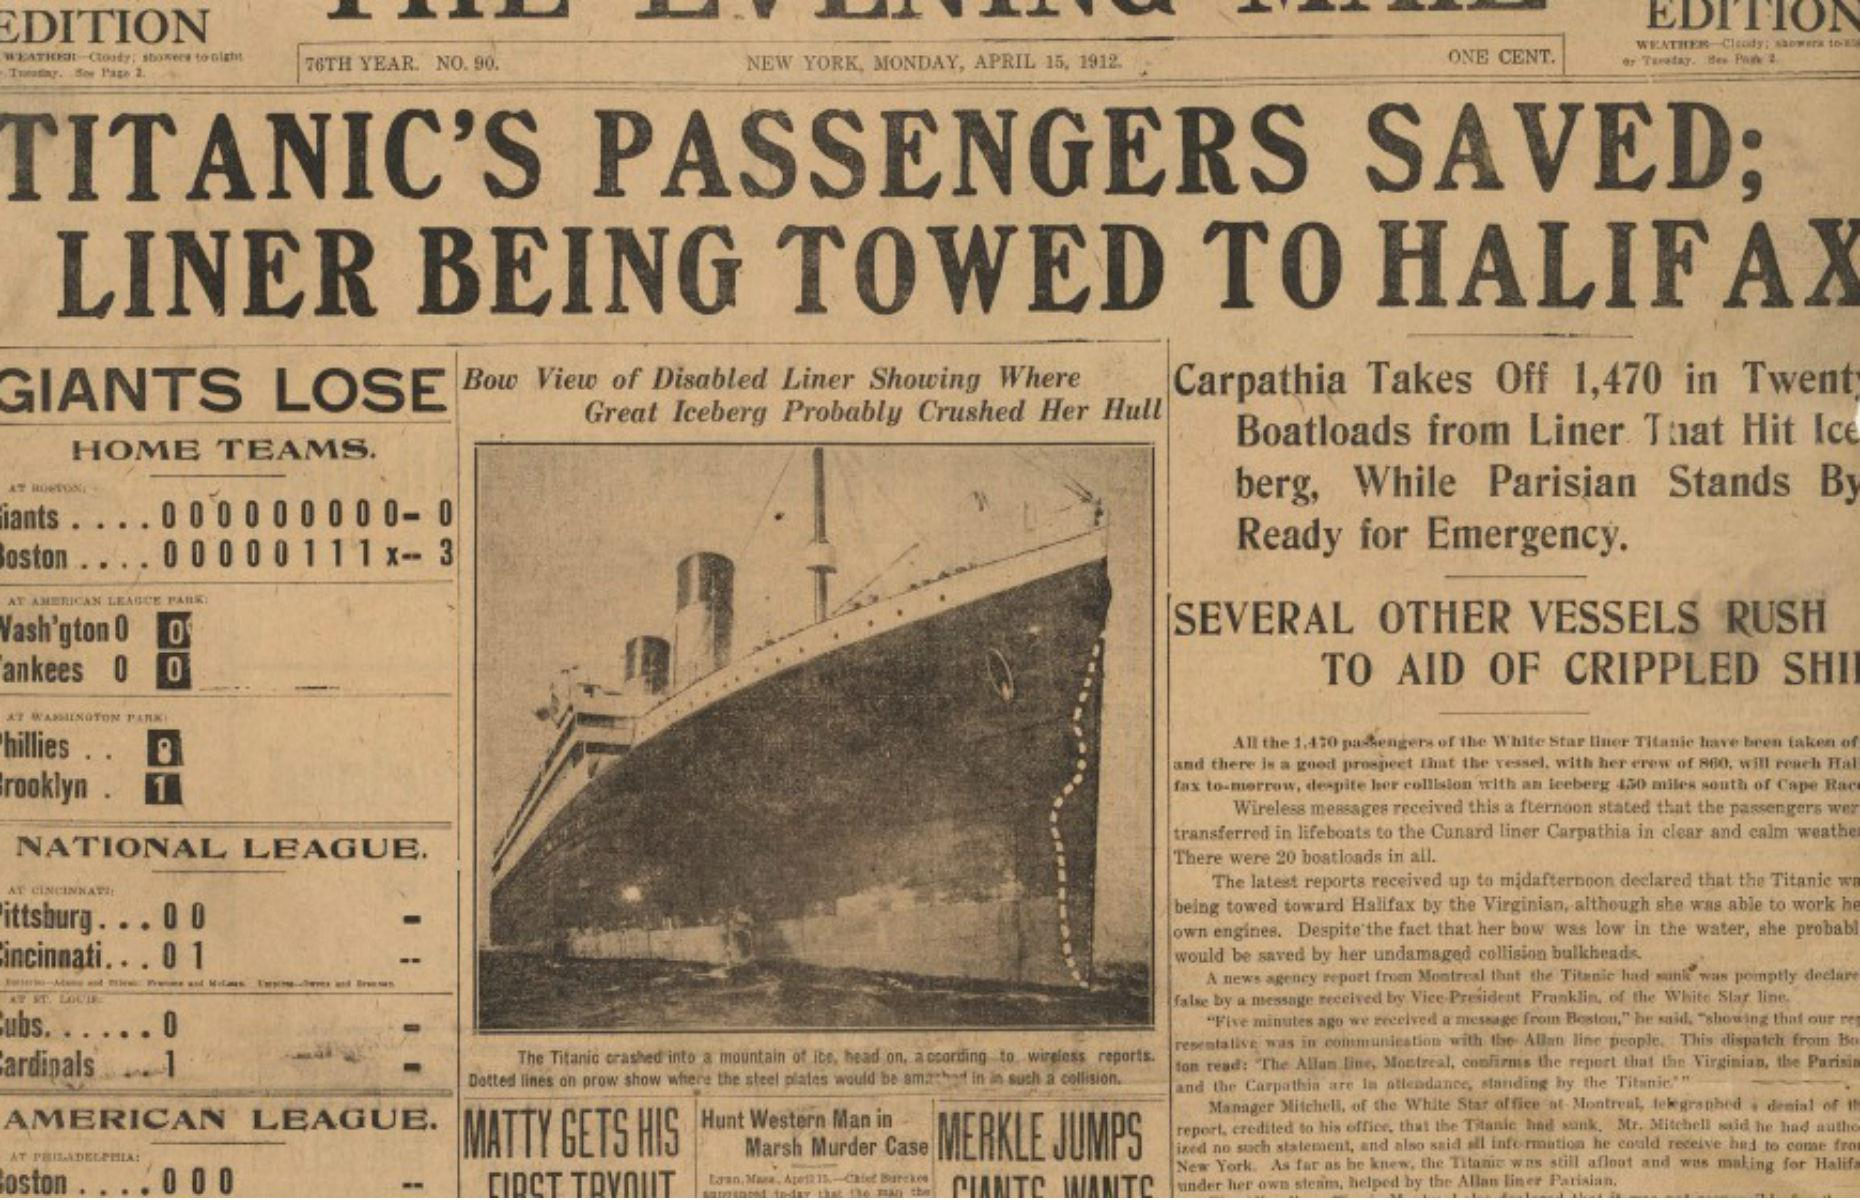 Slide 37 of 46: Several newspapers at the time reported the Titanic was safe and that all passengers were alive. The Times in the UK claimed the Titanic was being towed to Halifax, Nova Scotia, Canada by the RMS Virginian on Tuesday 16April 1912. The horrible truth wouldn't be fully reported until nearly 48 hours after the Titanic struck the iceberg.